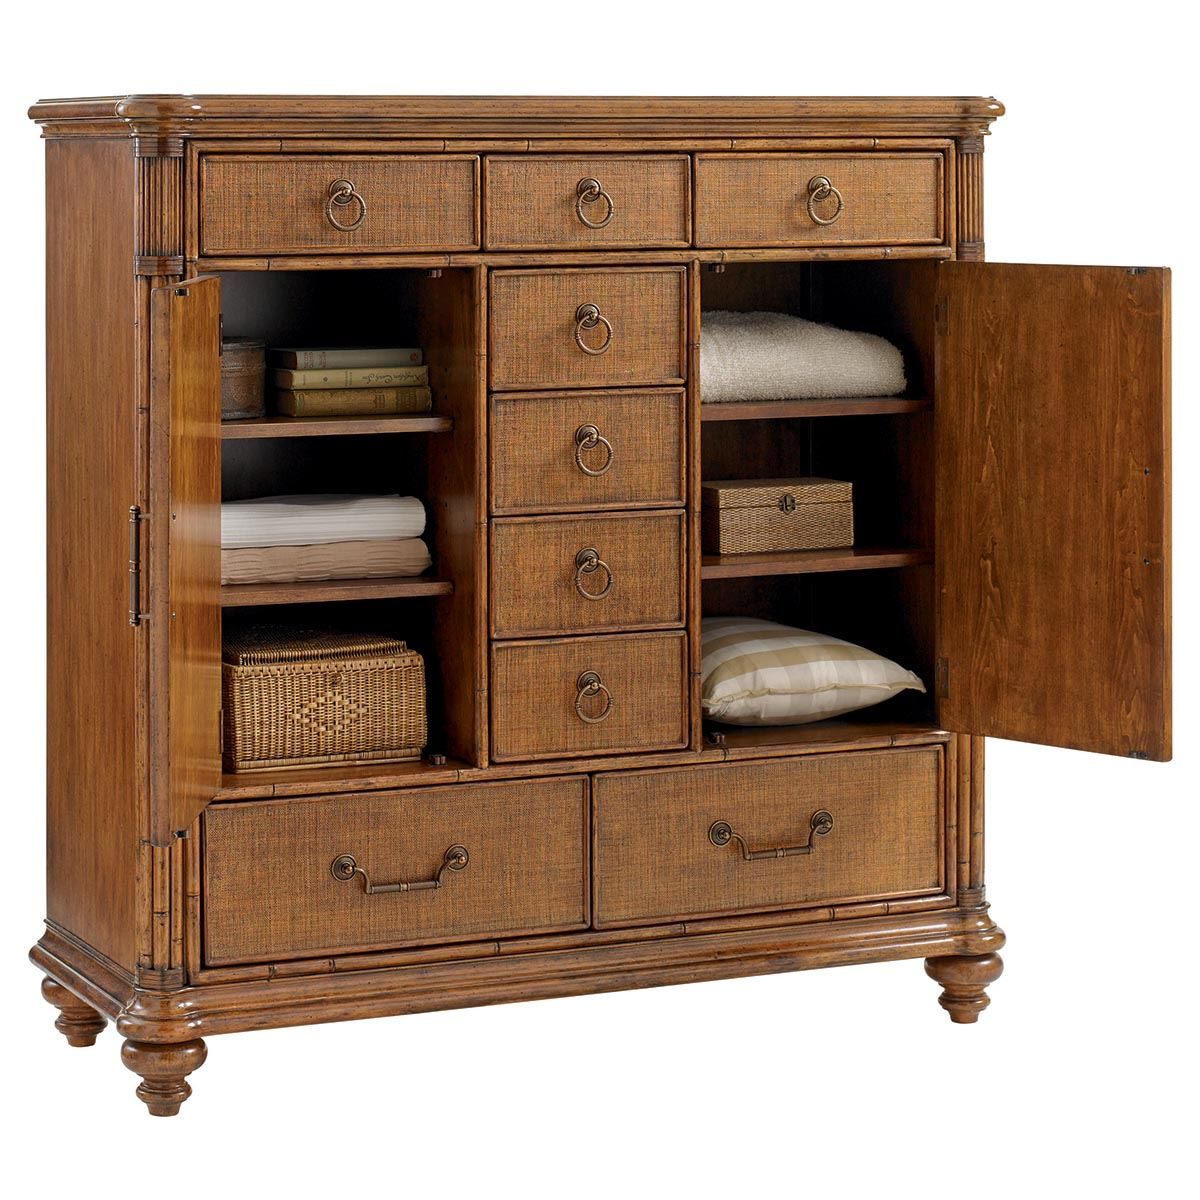 Picture of Balencia Gentleman's Chest